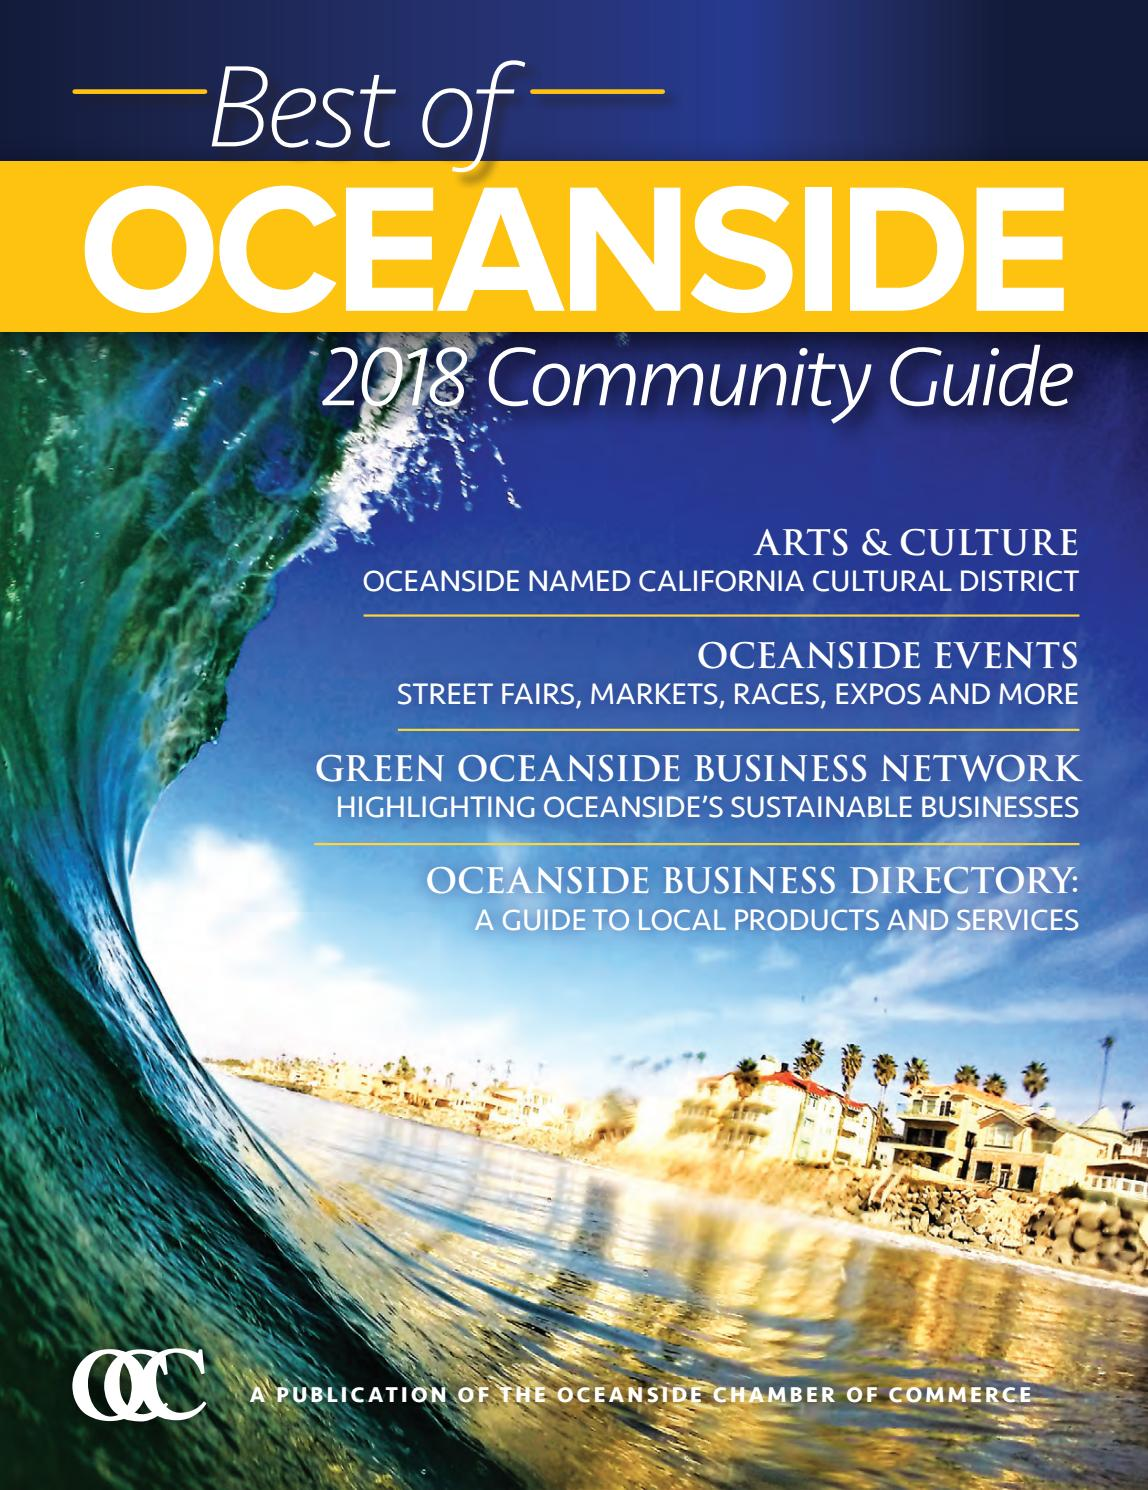 2018 Best of Oceanside Community Guide by Oceanside Chamber